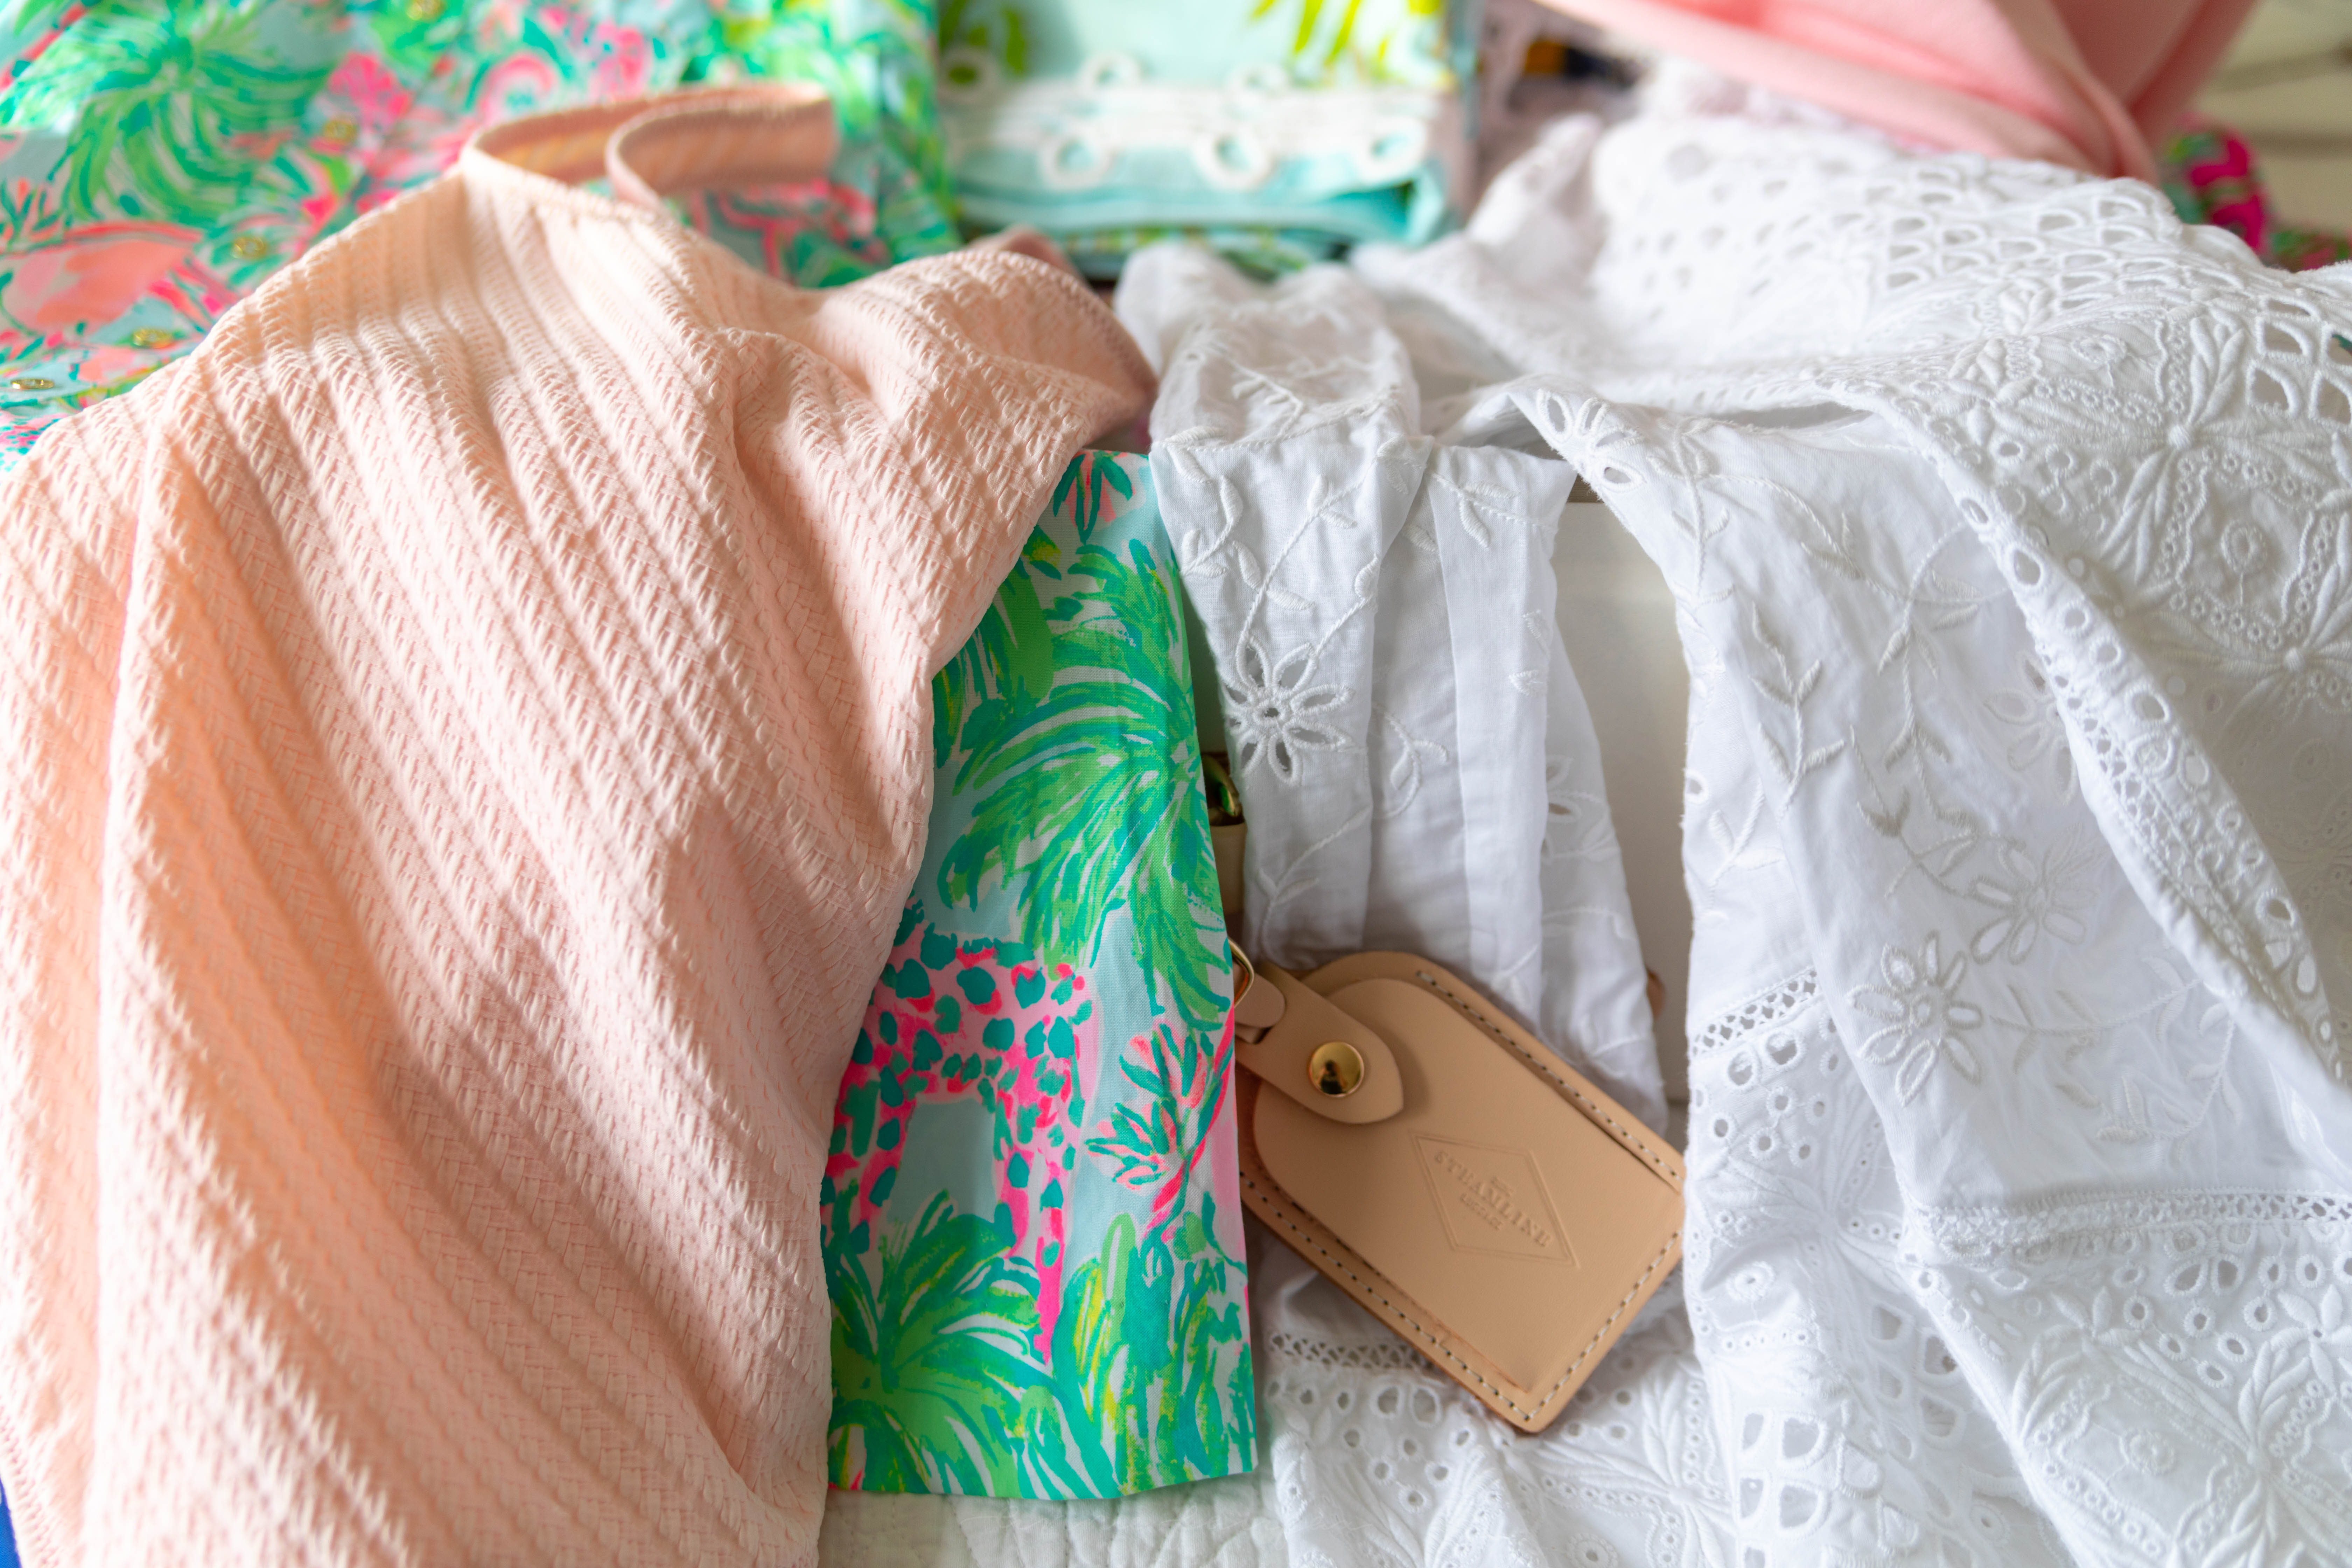 Steamline Luggage Review and Packing List for Travelers, Vacation, Weekend Getaway, Lilly Pulitzer, Vineyard Vines, Solid & Striped